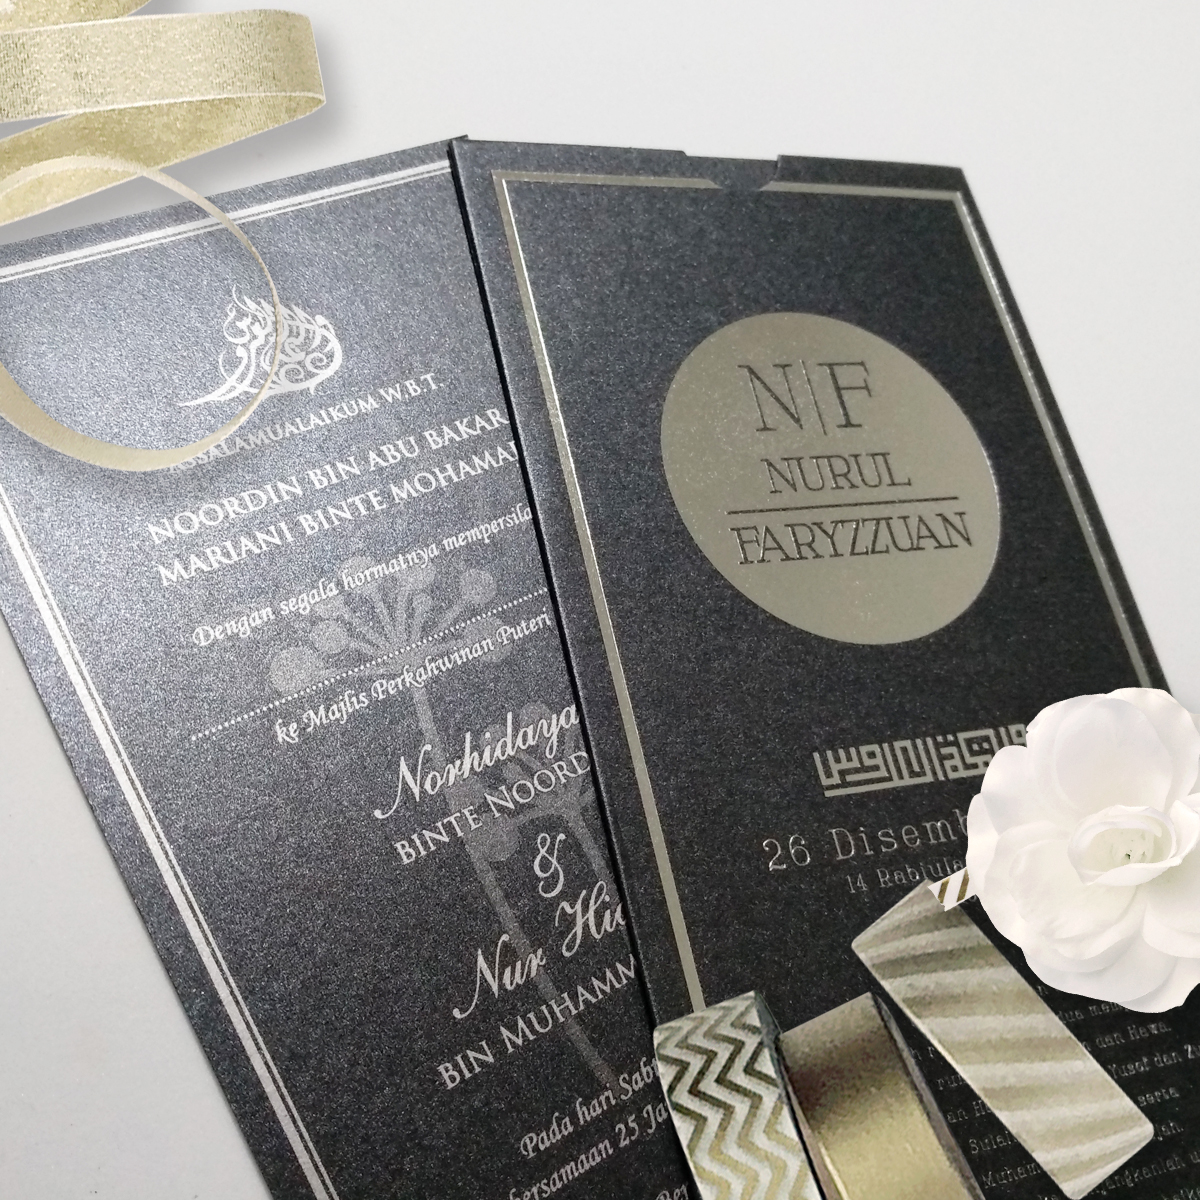 jentayu design kad kahwin poket pocket series metallic black hot stamping silver wedding cards malaysia